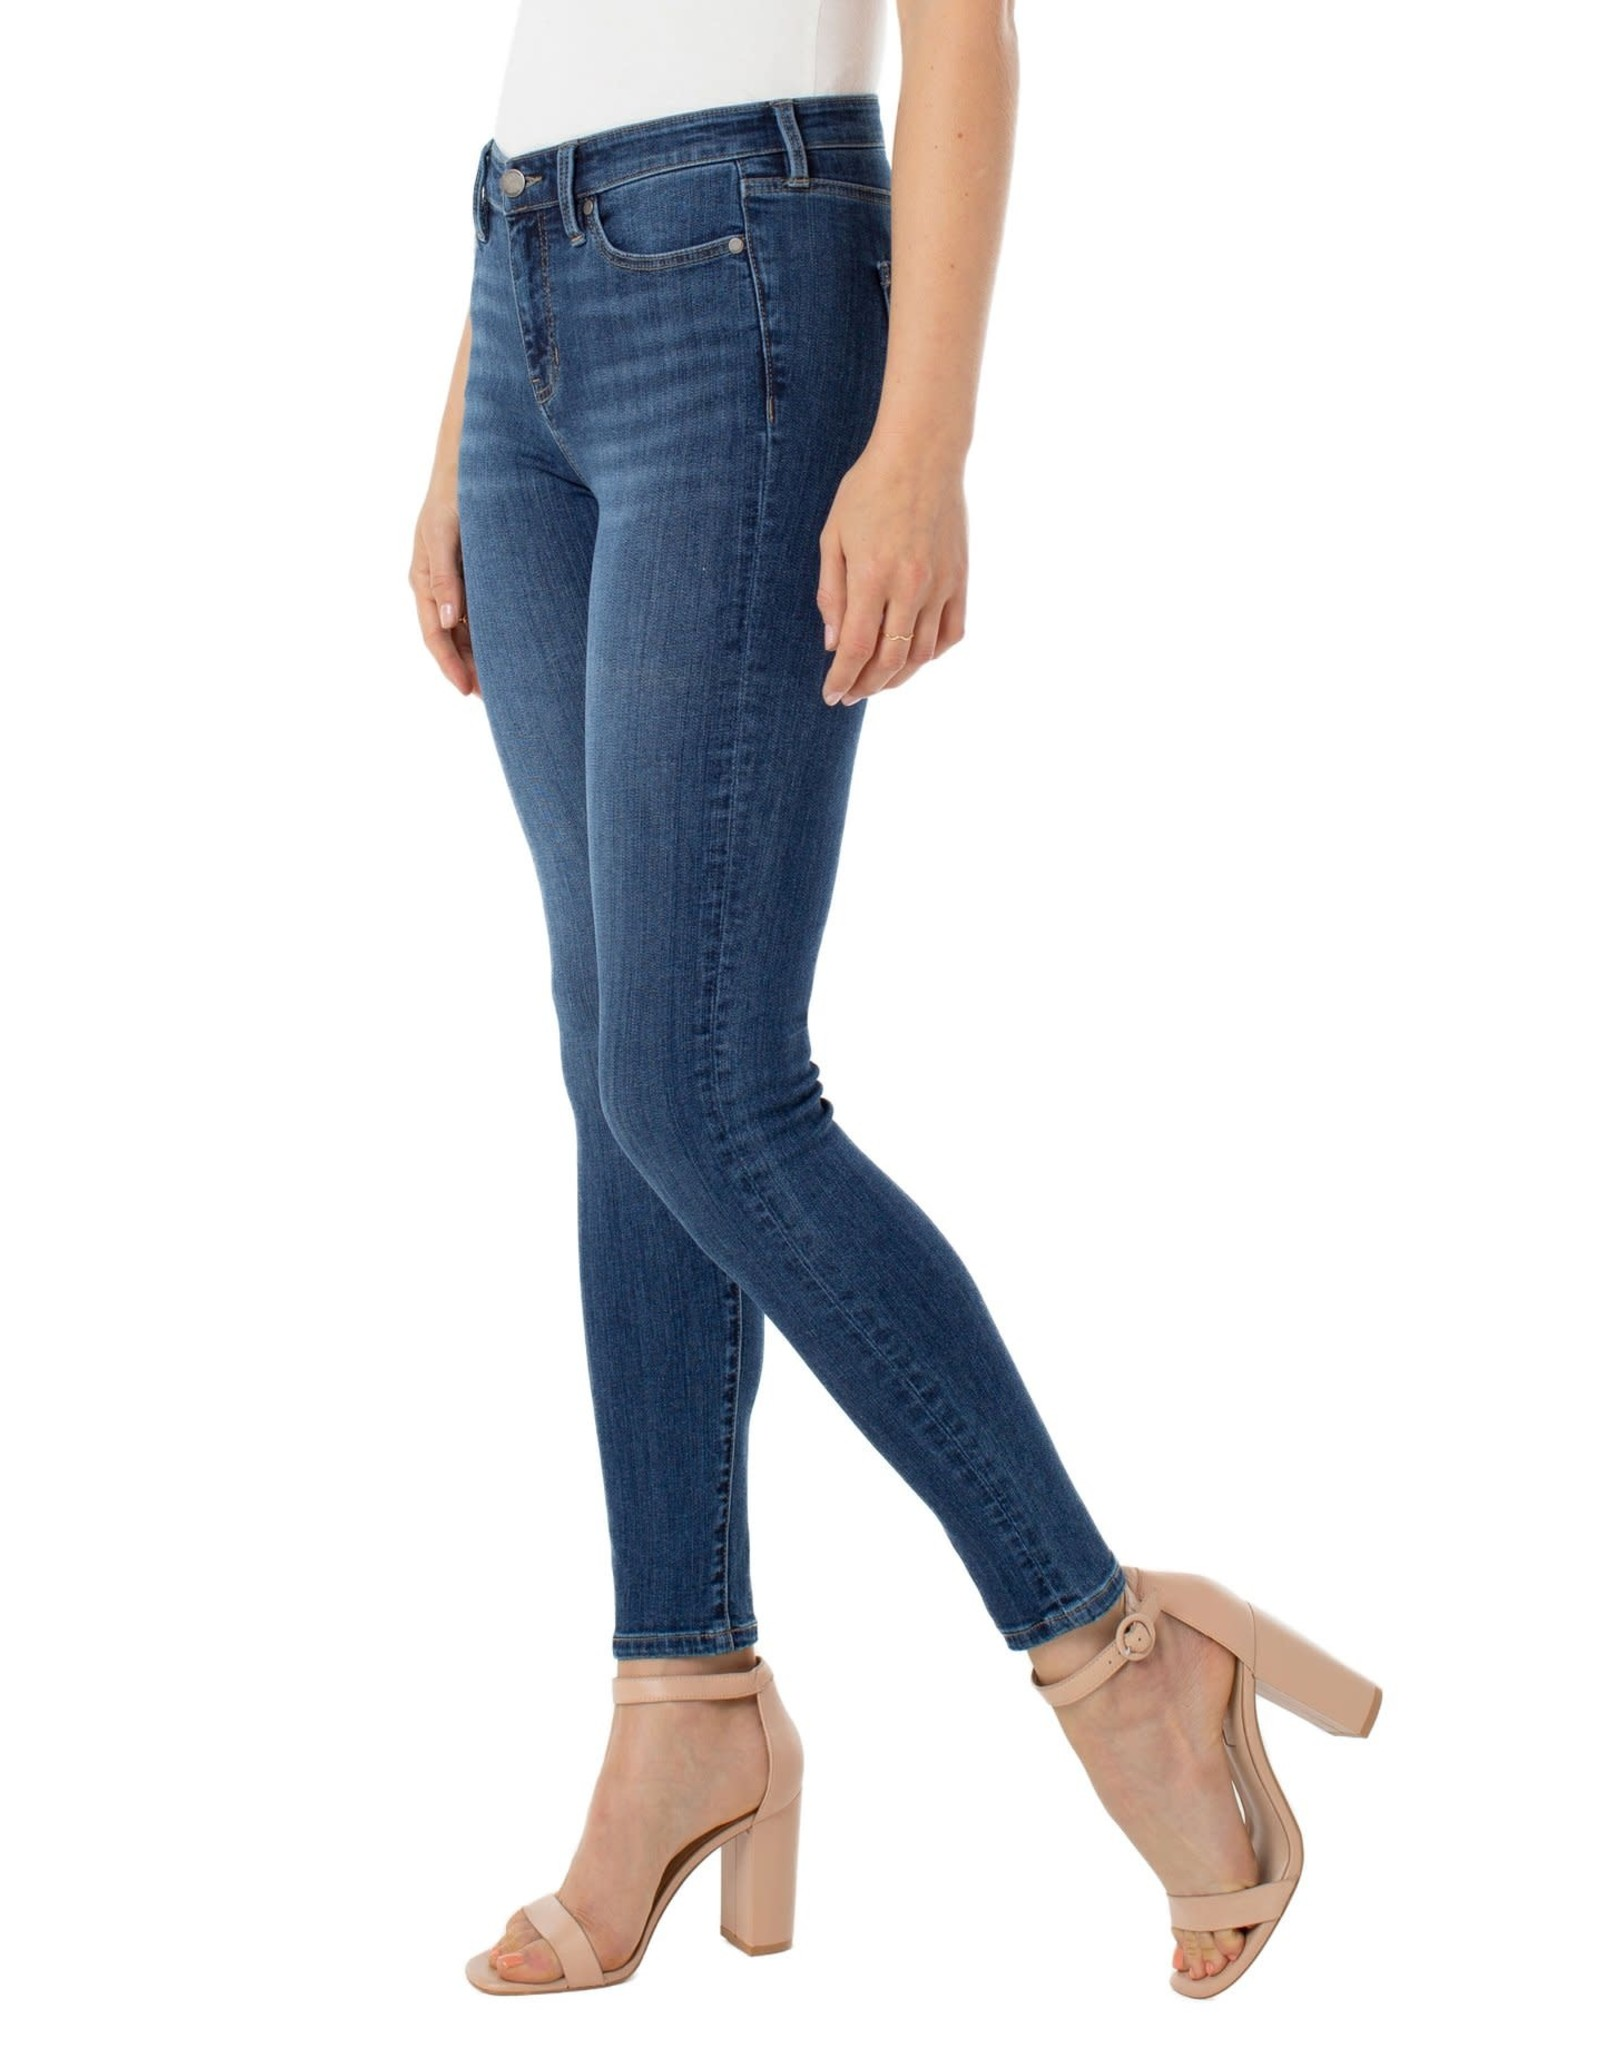 Liverpool Liverpool Abby Ankle Jean